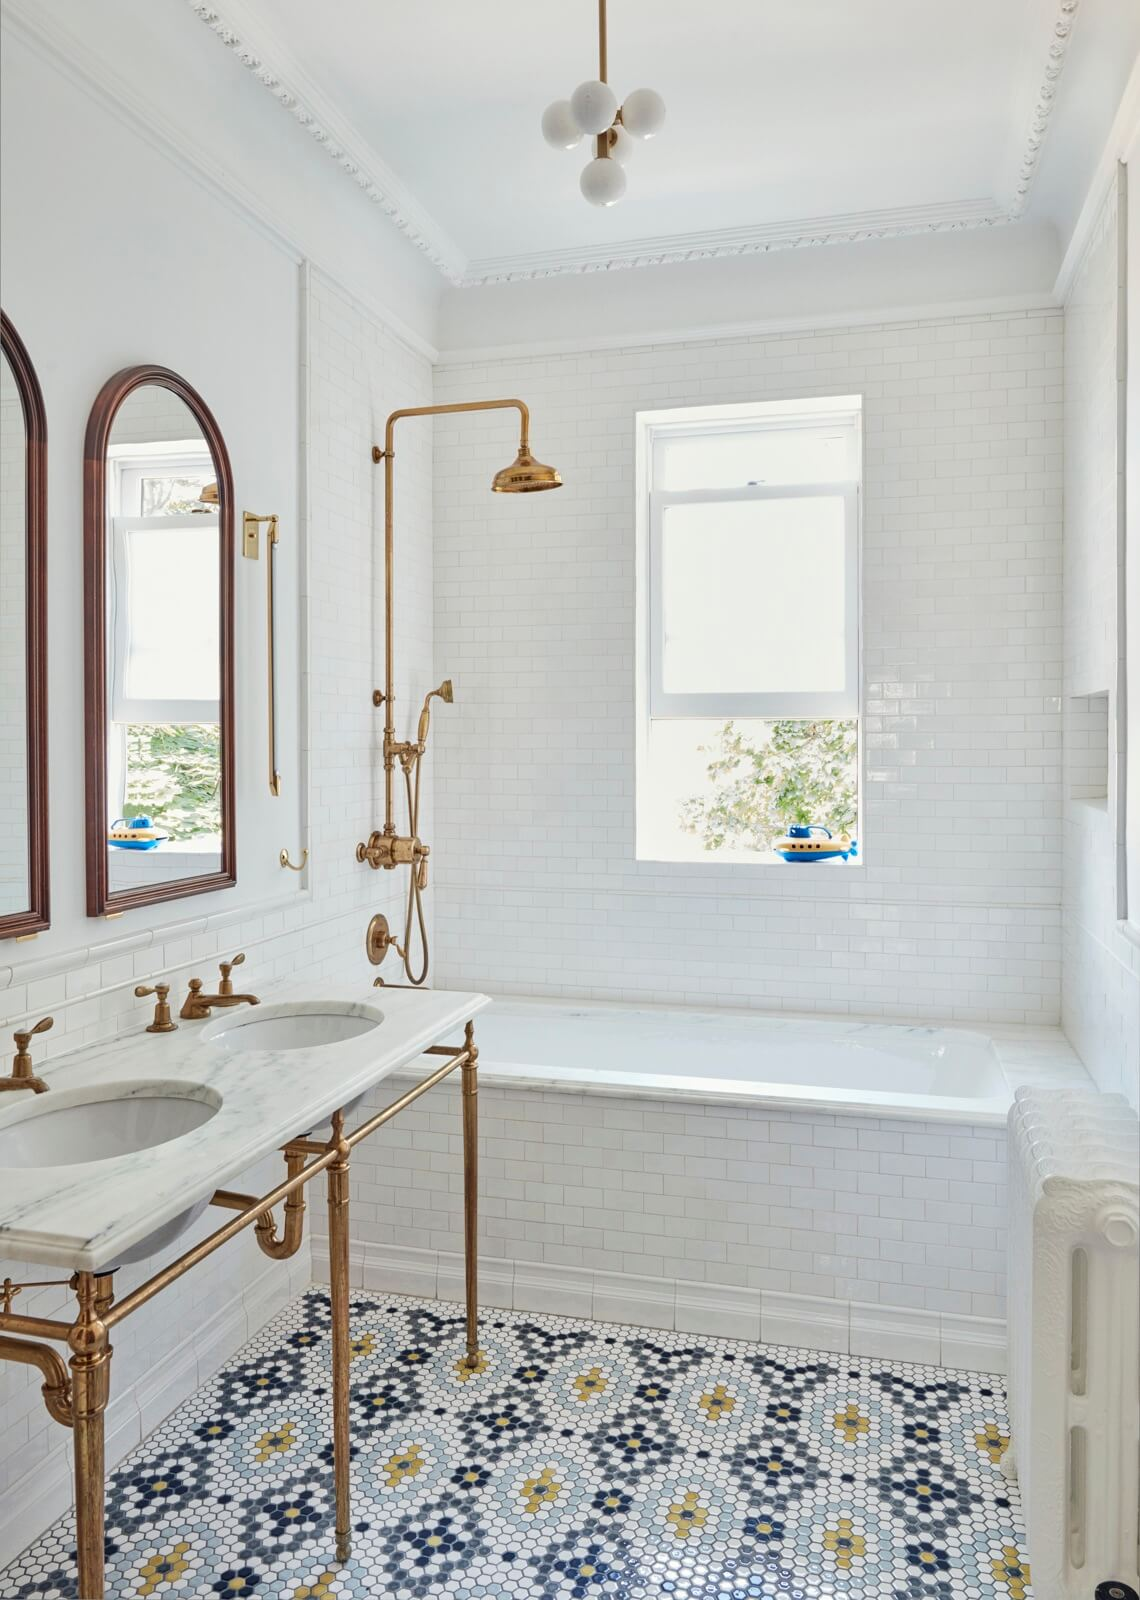 Interior Design Ideas Brooklyn CWB JHID Park Slope